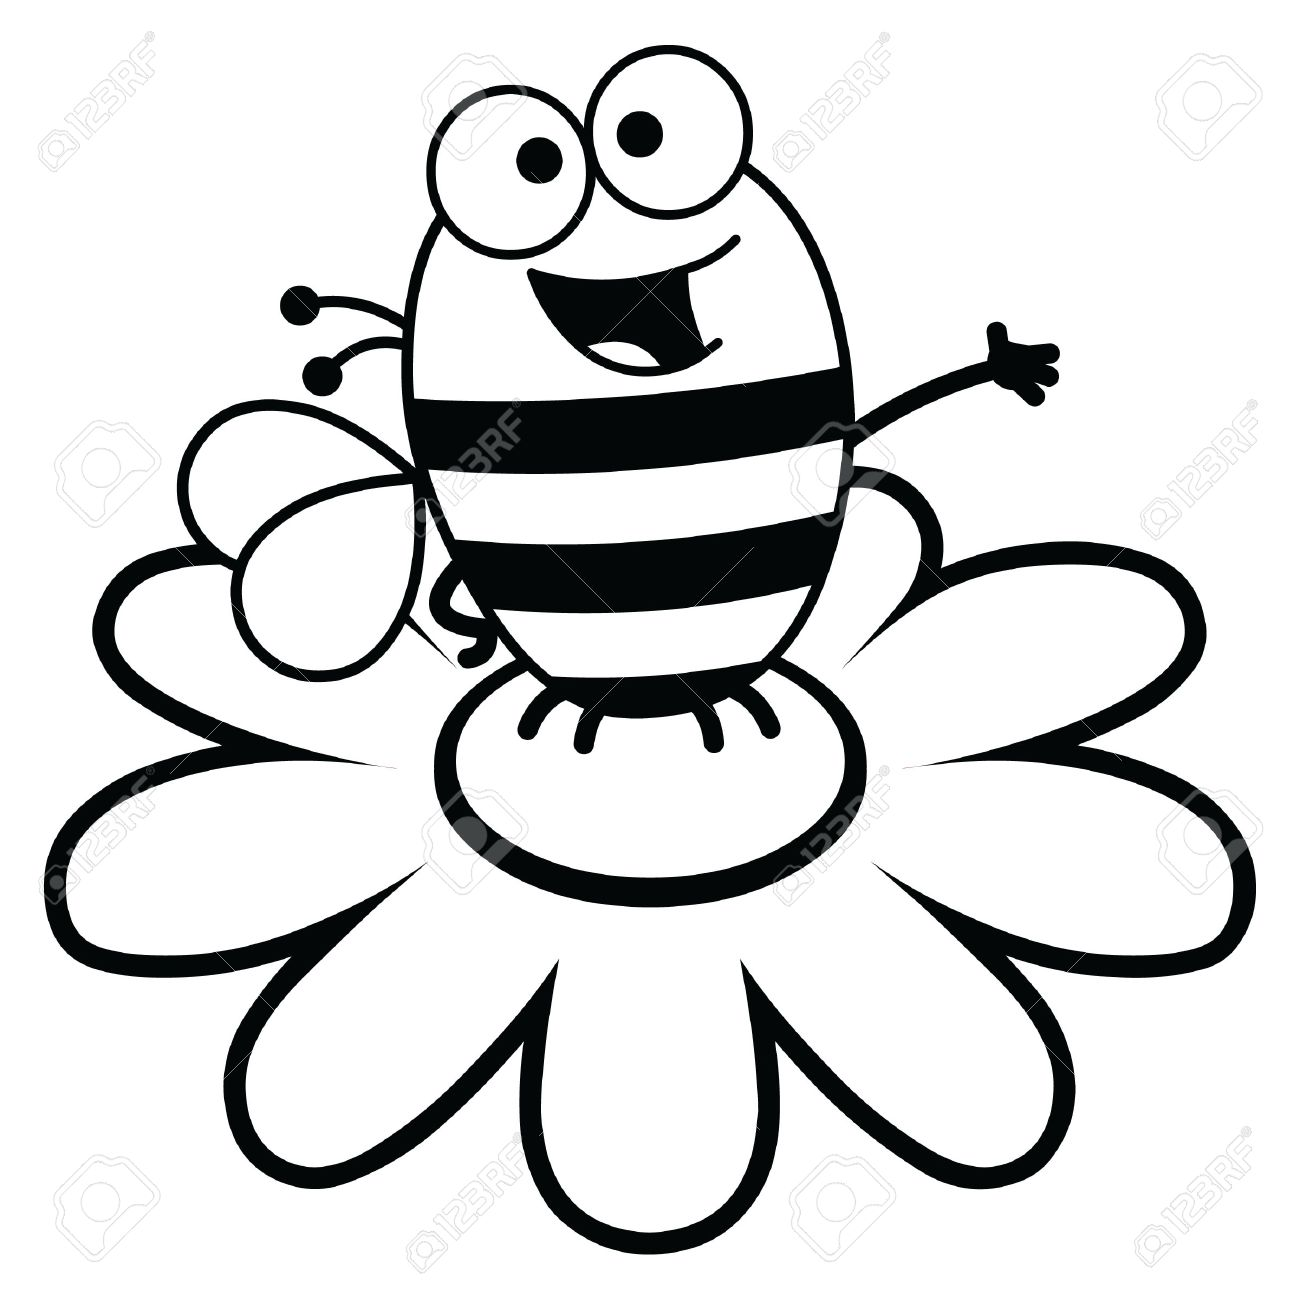 Black And White Cartoon Illustration Of A Bee Atop Large Flower Stock Vector